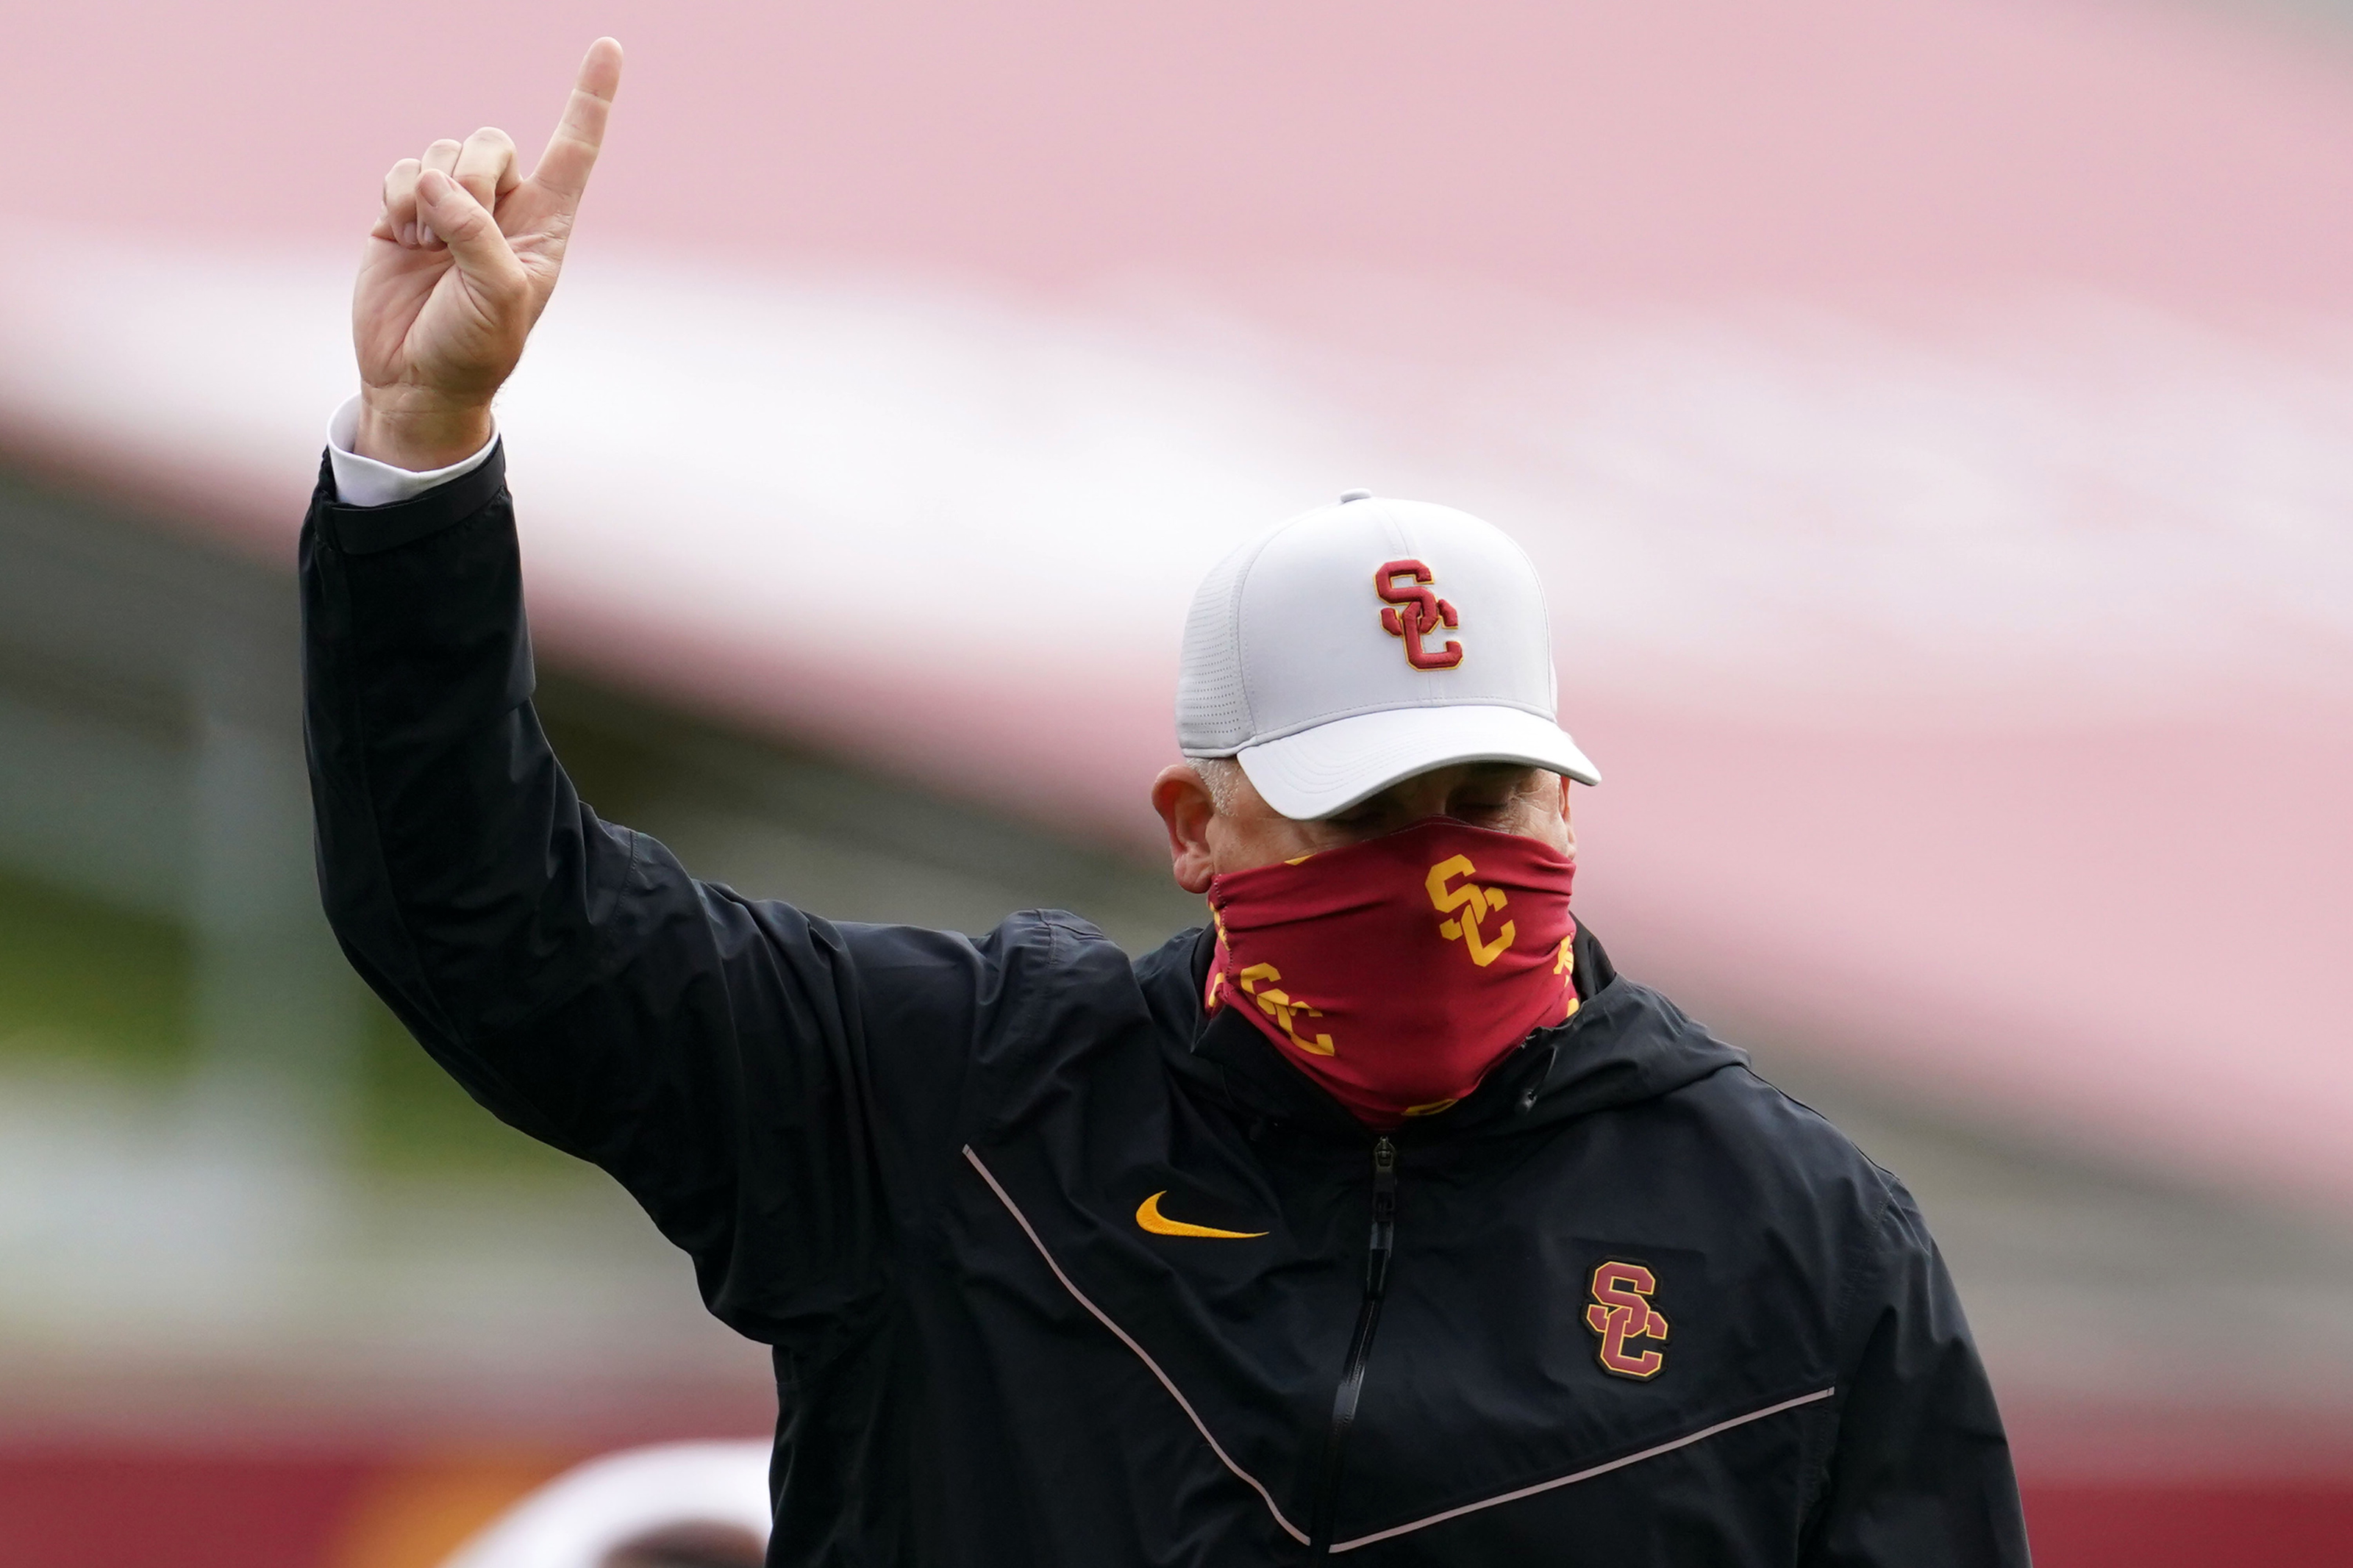 Clay Helton Gets Last Laugh After Colin Cowherd Buries Usc Football Coach